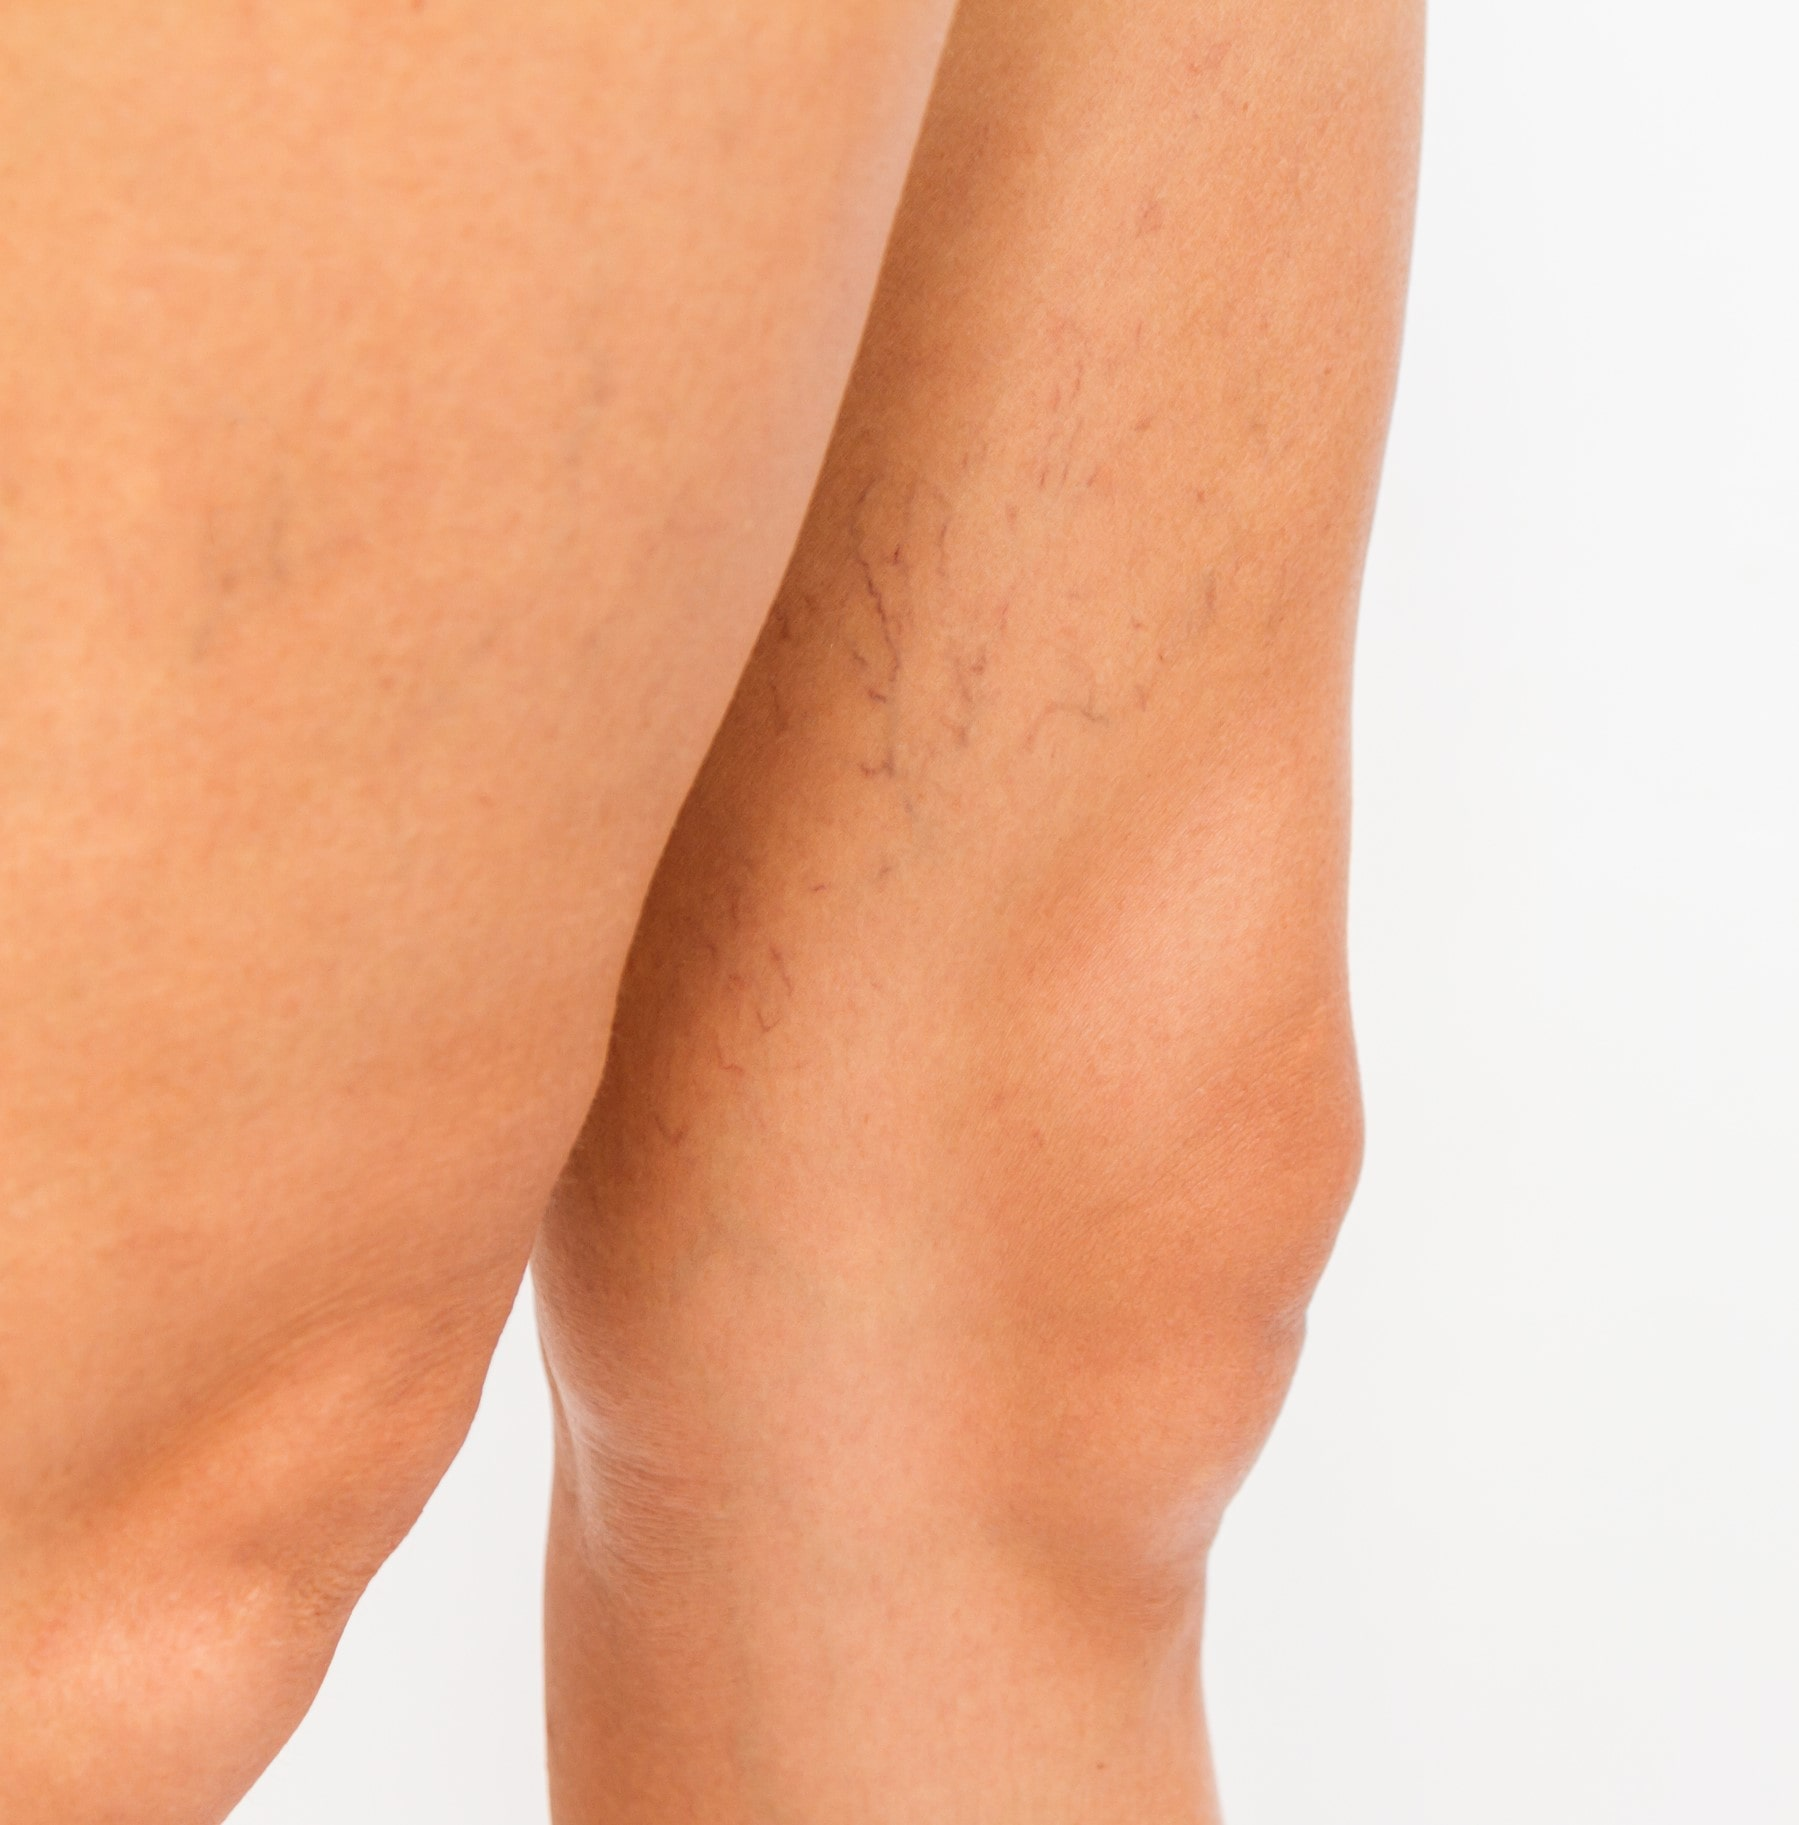 Varicose Veins and Spider Veins Treatment